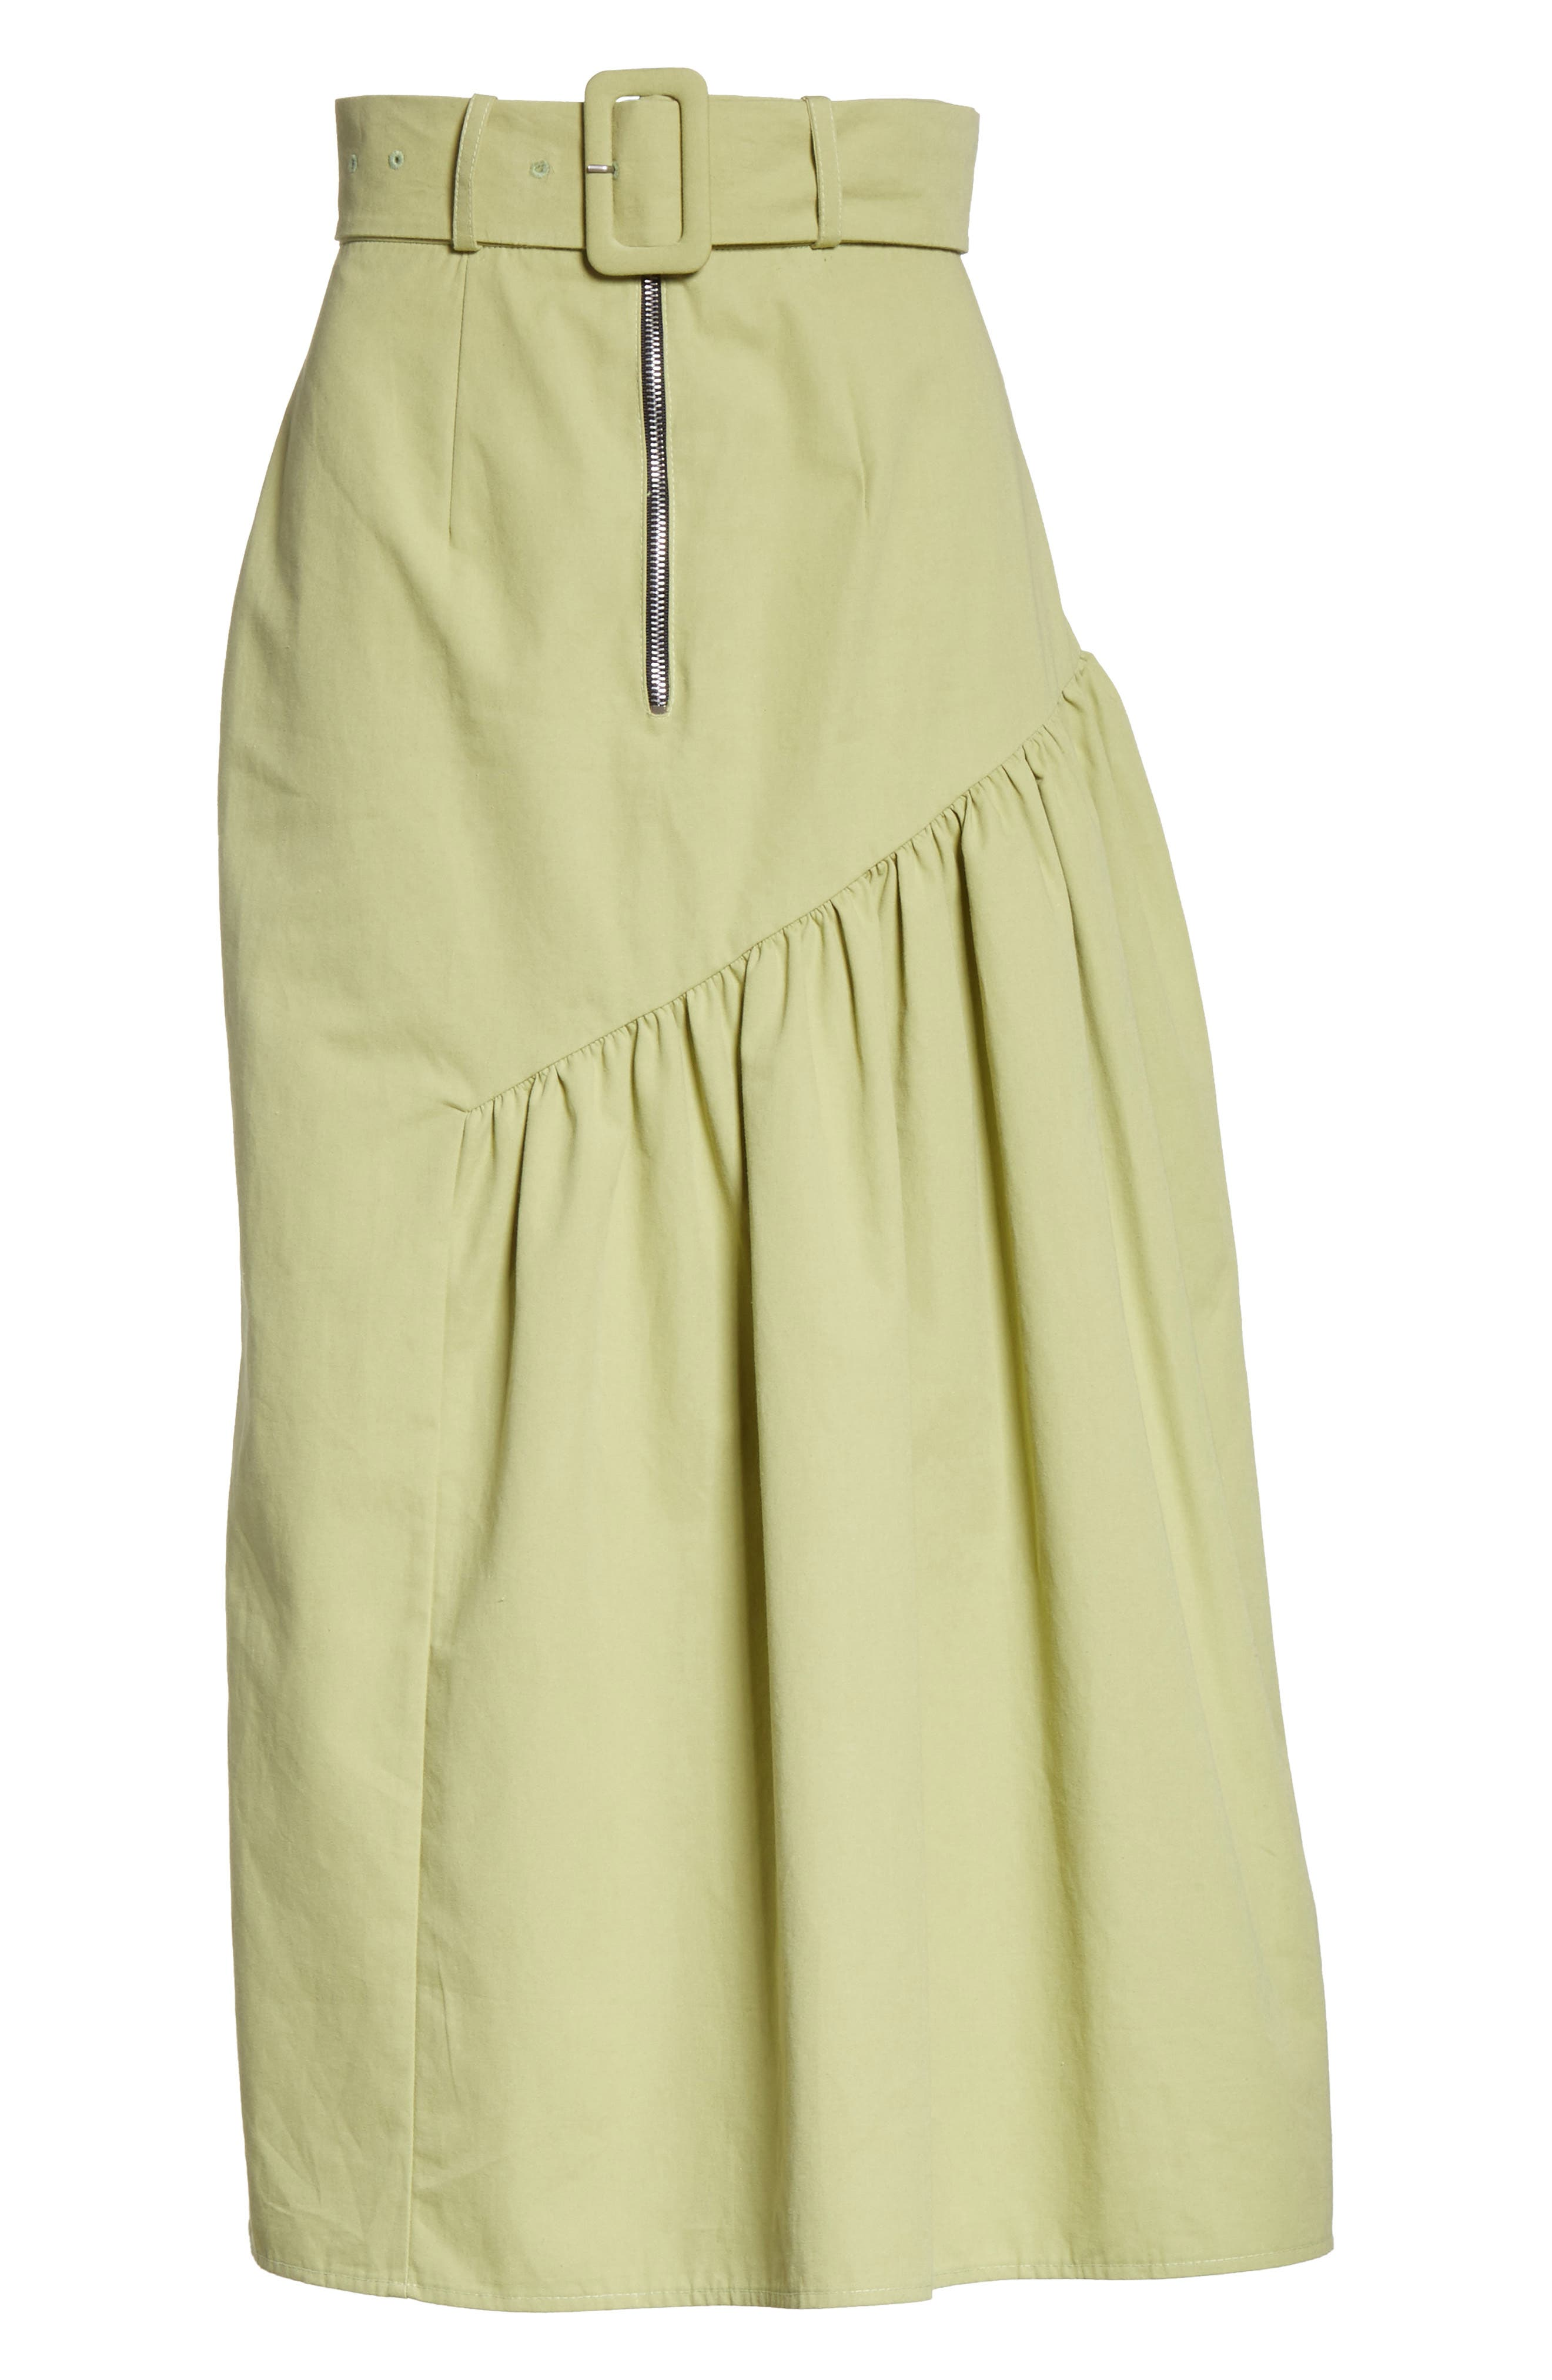 Belted High Waist Ruffle Skirt,                             Alternate thumbnail 8, color,                             Cotton Sage Green